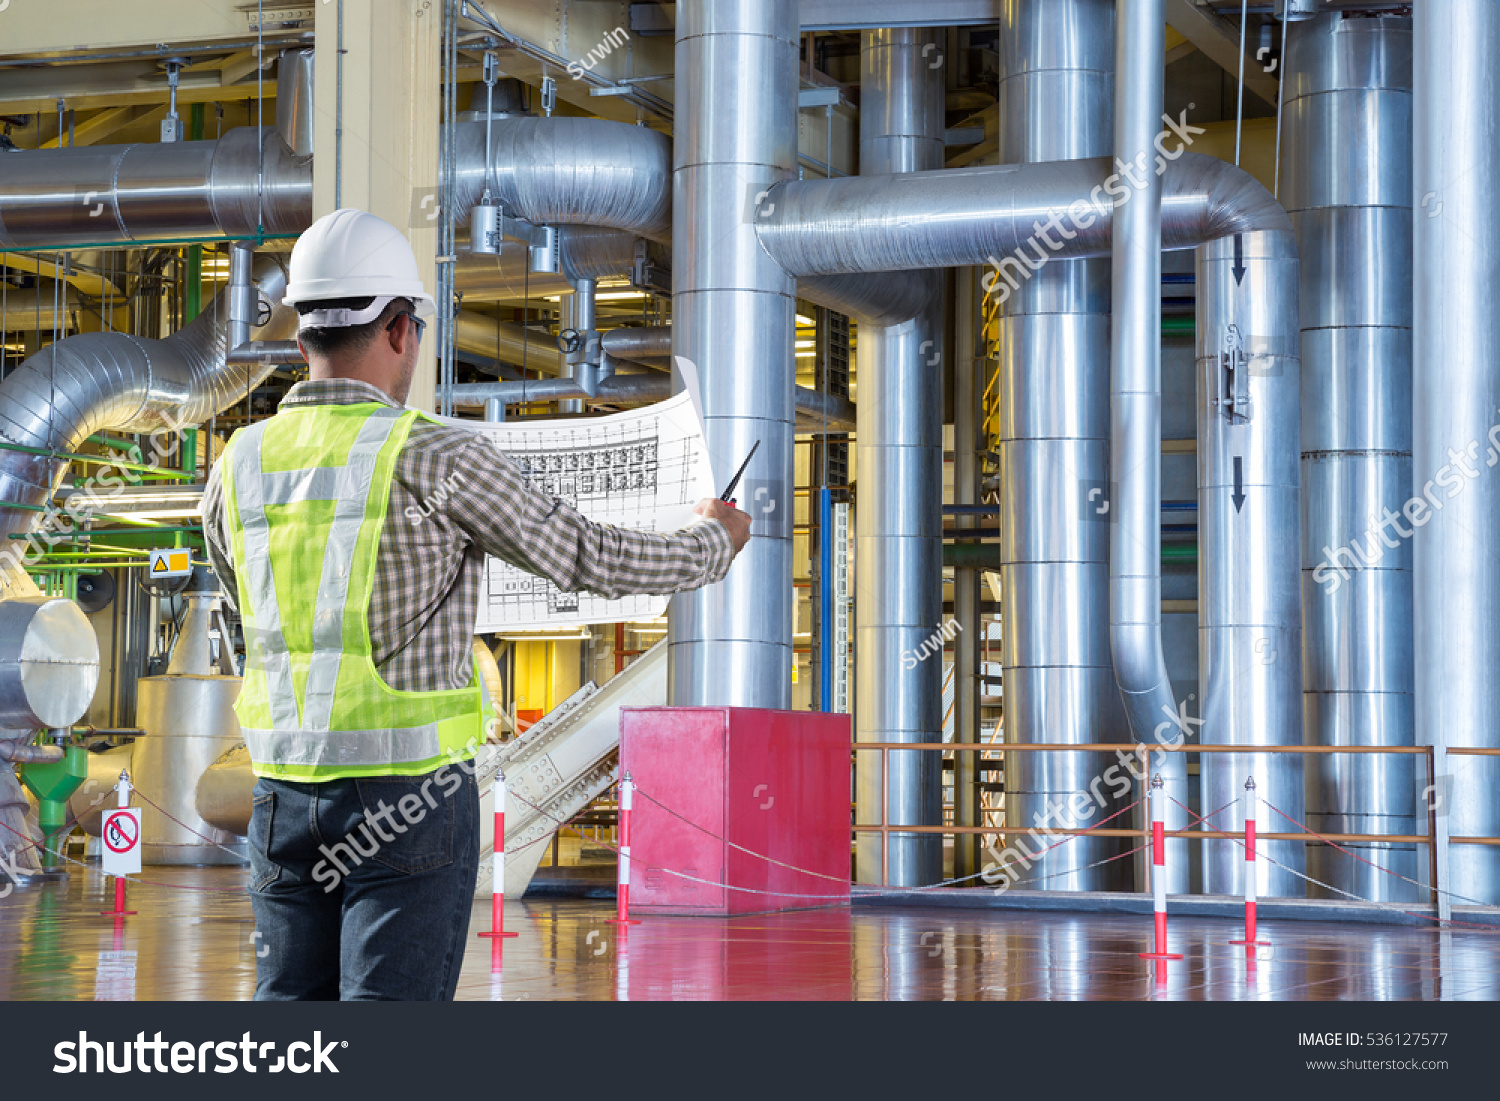 Electrical Engineer Reading Drawing Diagram Maintenance Stock Photo Of Power Plant For At Thermal Factory